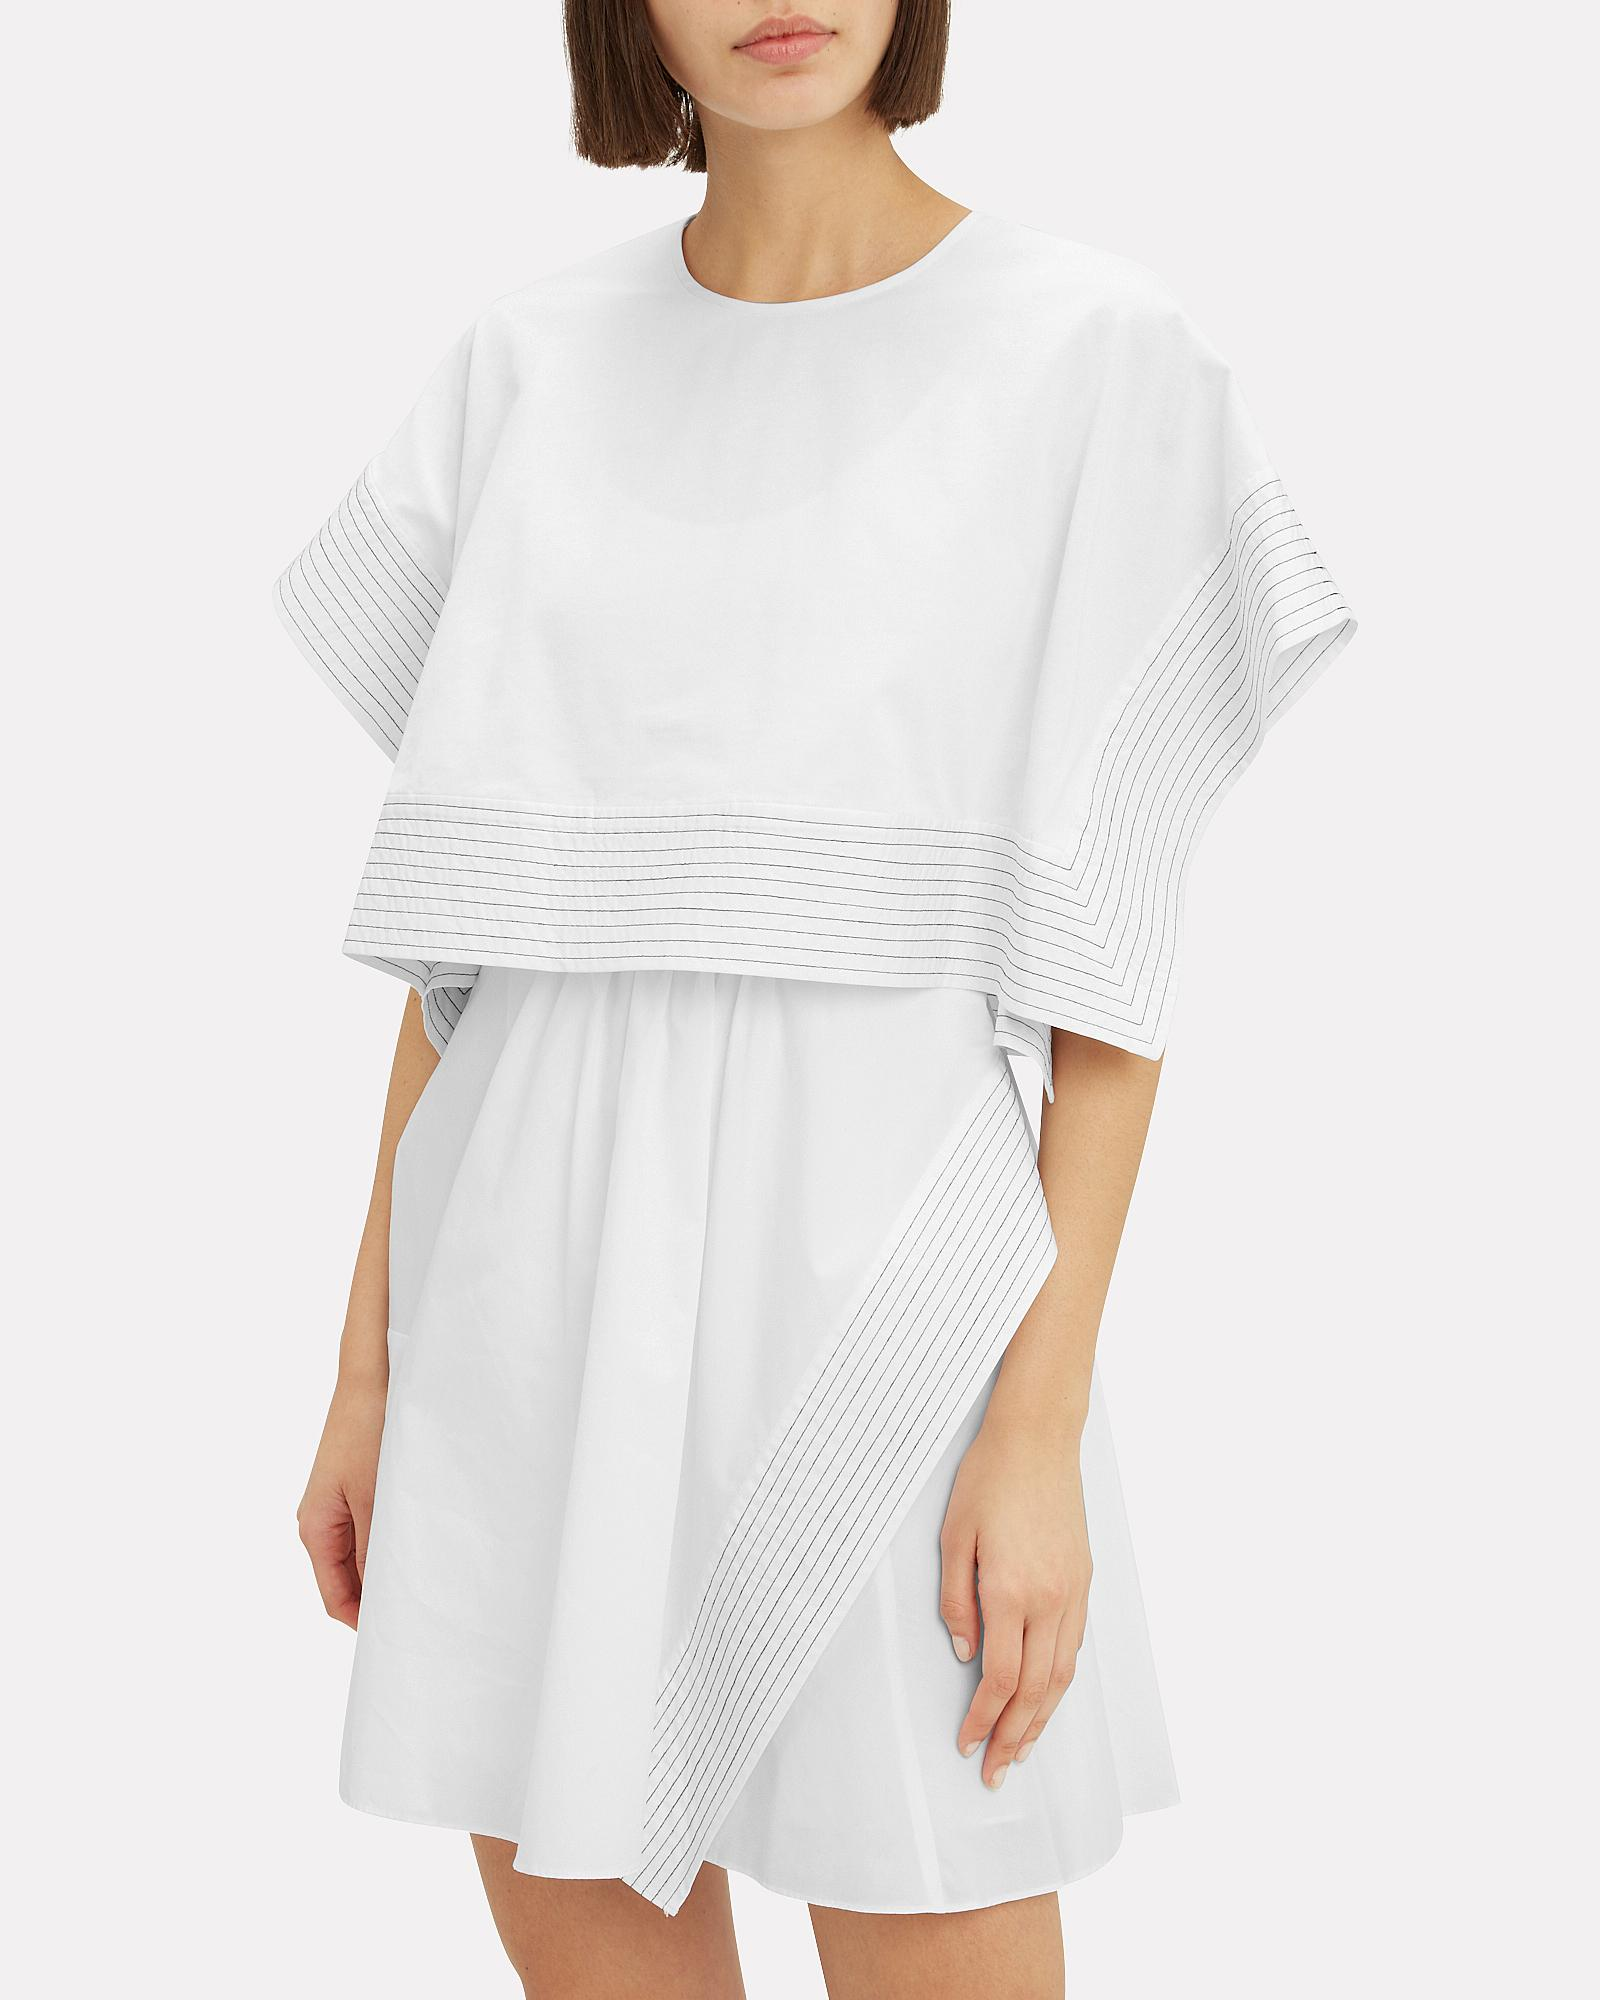 eb71ee61db1bf8 3.1 Phillip Lim - White Boxy Crop Top Mini Dress - Lyst. View fullscreen